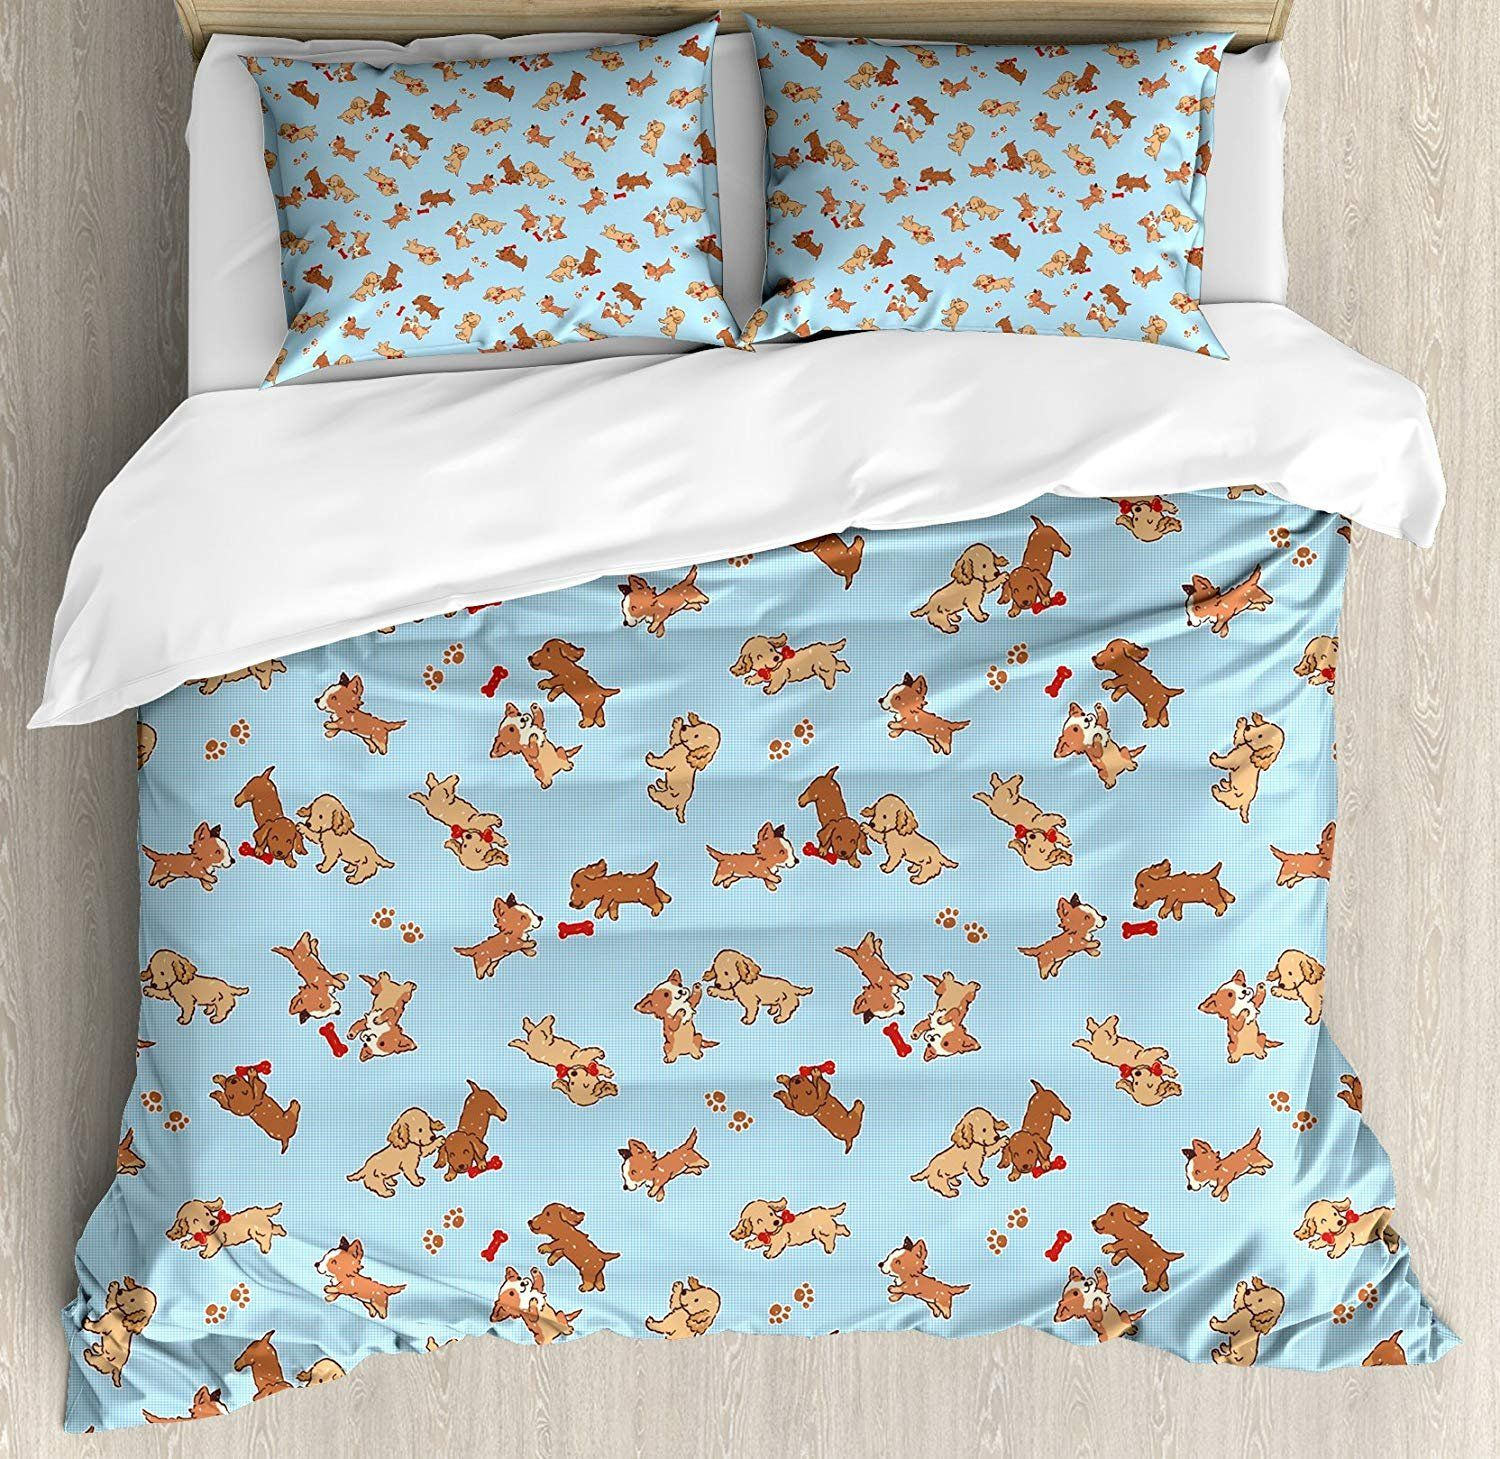 Brushstrokes Watercolors Print Kids Quilted Bedspread /& Pillow Shams Set